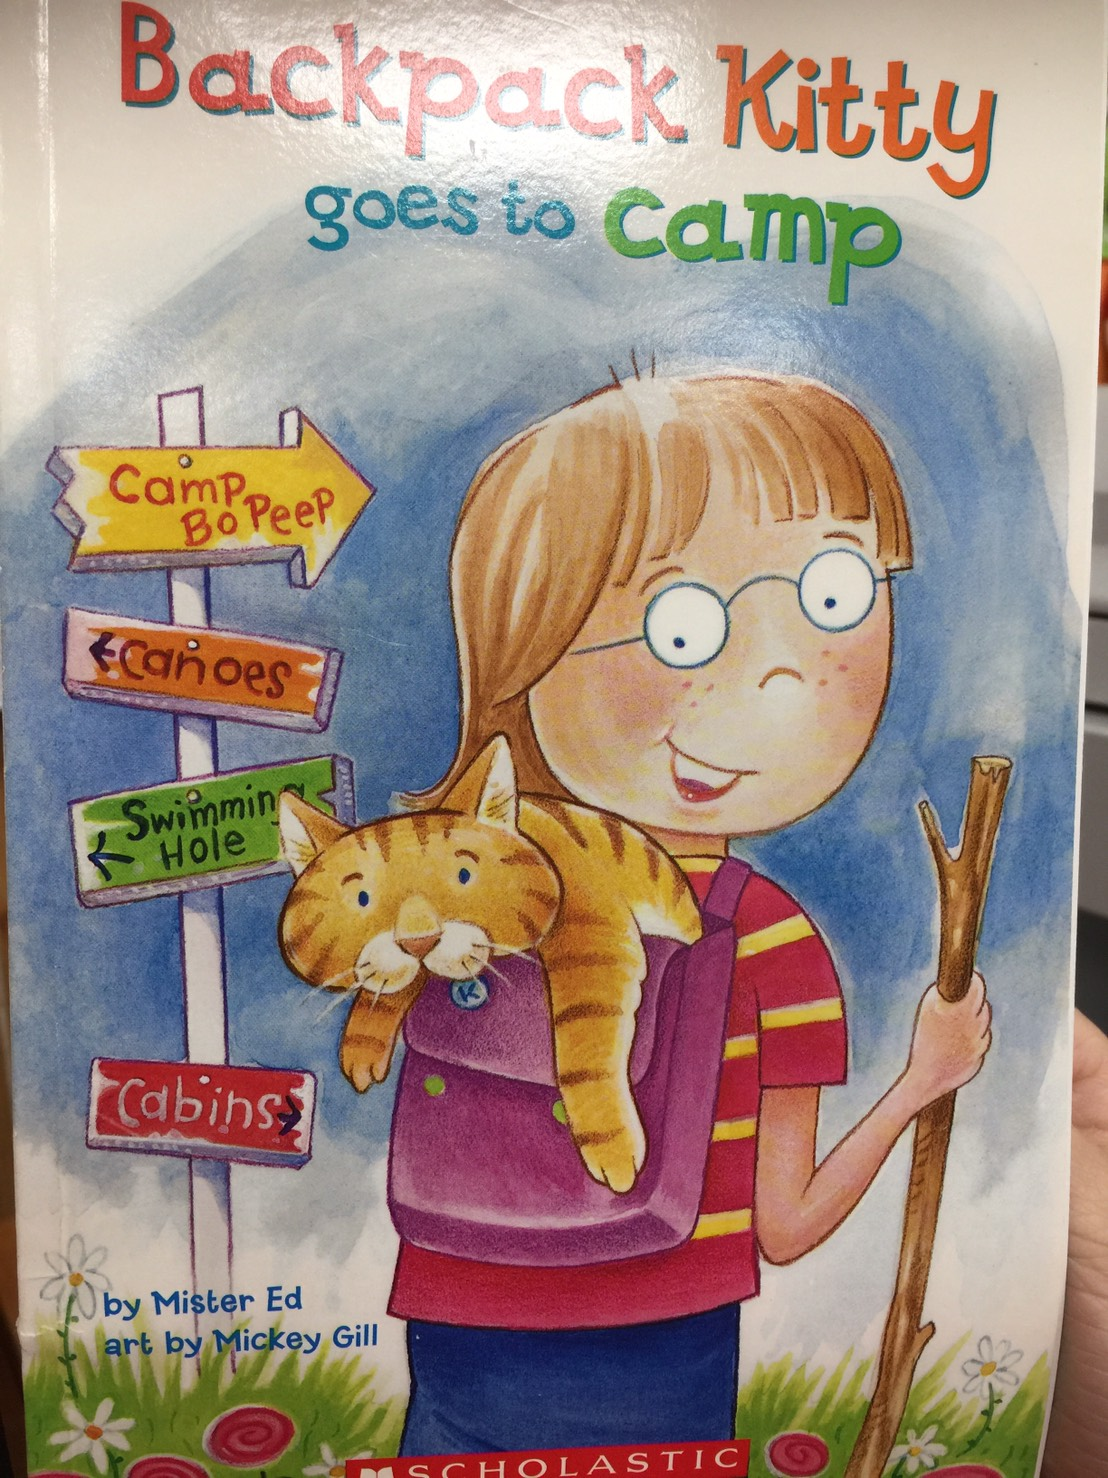 Backpack Kitty Goes to Camp